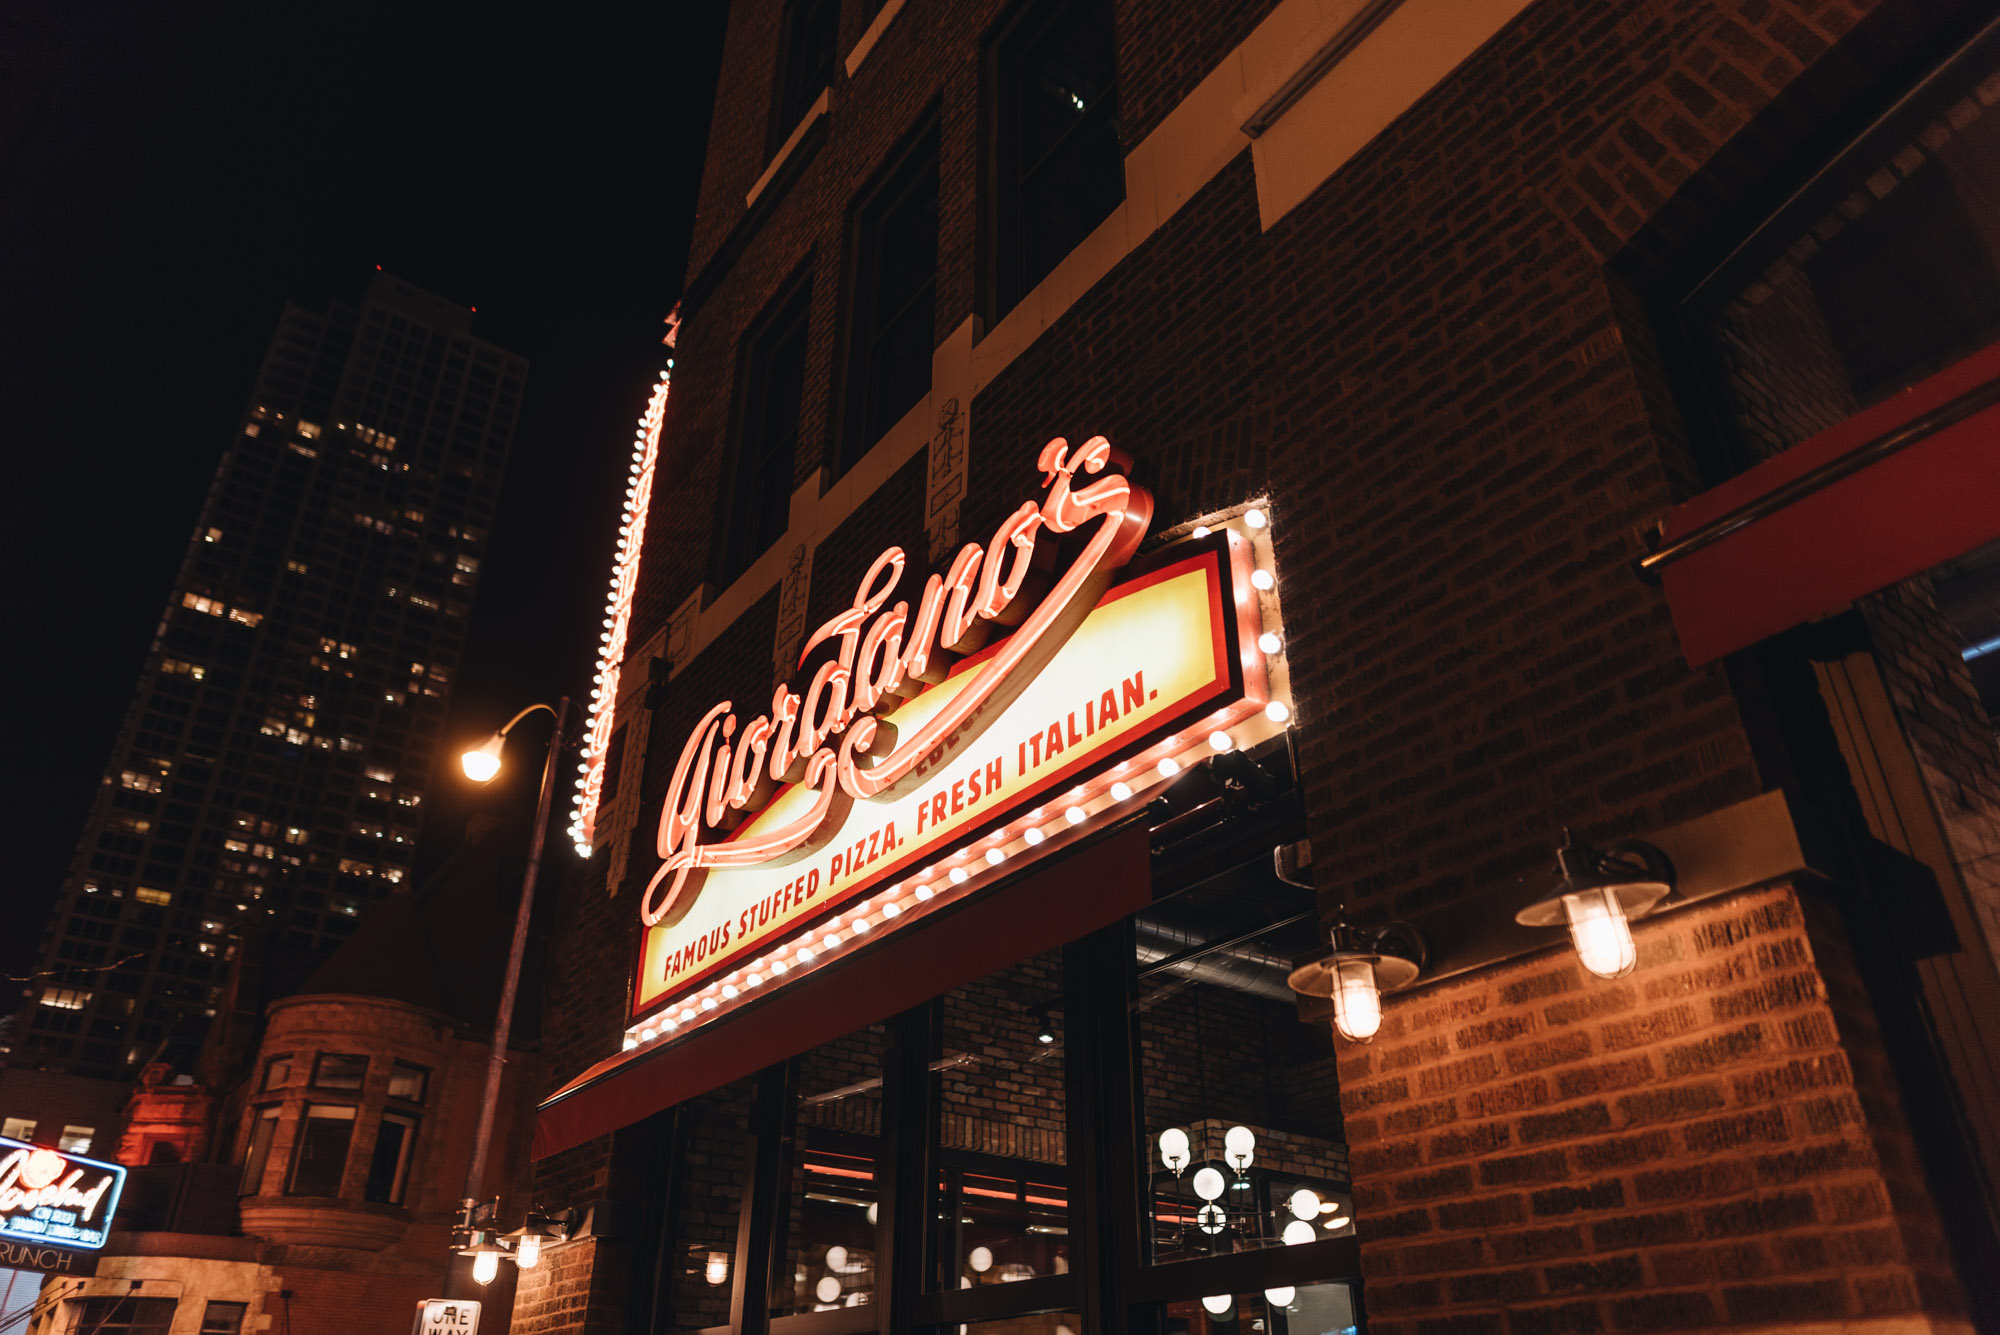 Jeff On The Road - Travel - Chicago - Where to eat - Giordano's Deep Dish Pizza - All photos are under Copyright © 2017 Jeff Frenette Photography / dezjeff. To use the photos, please contact me at dezjeff@me.com.